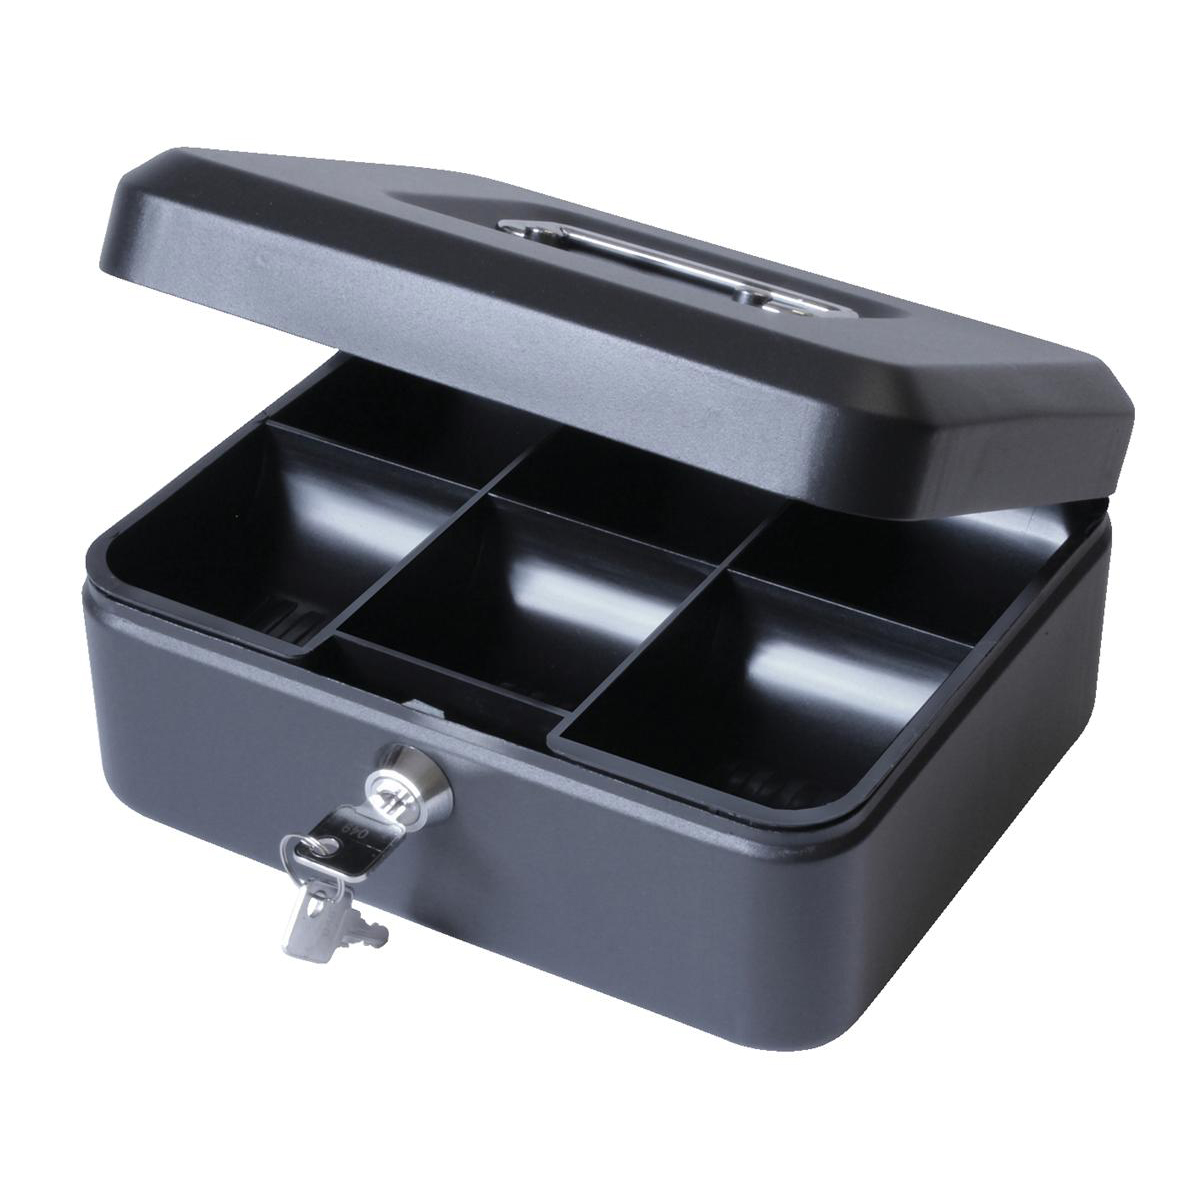 Cash Box with Lock & 2 Keys Removable Coin Tray 8 Inch W200xD160xH70mm Black